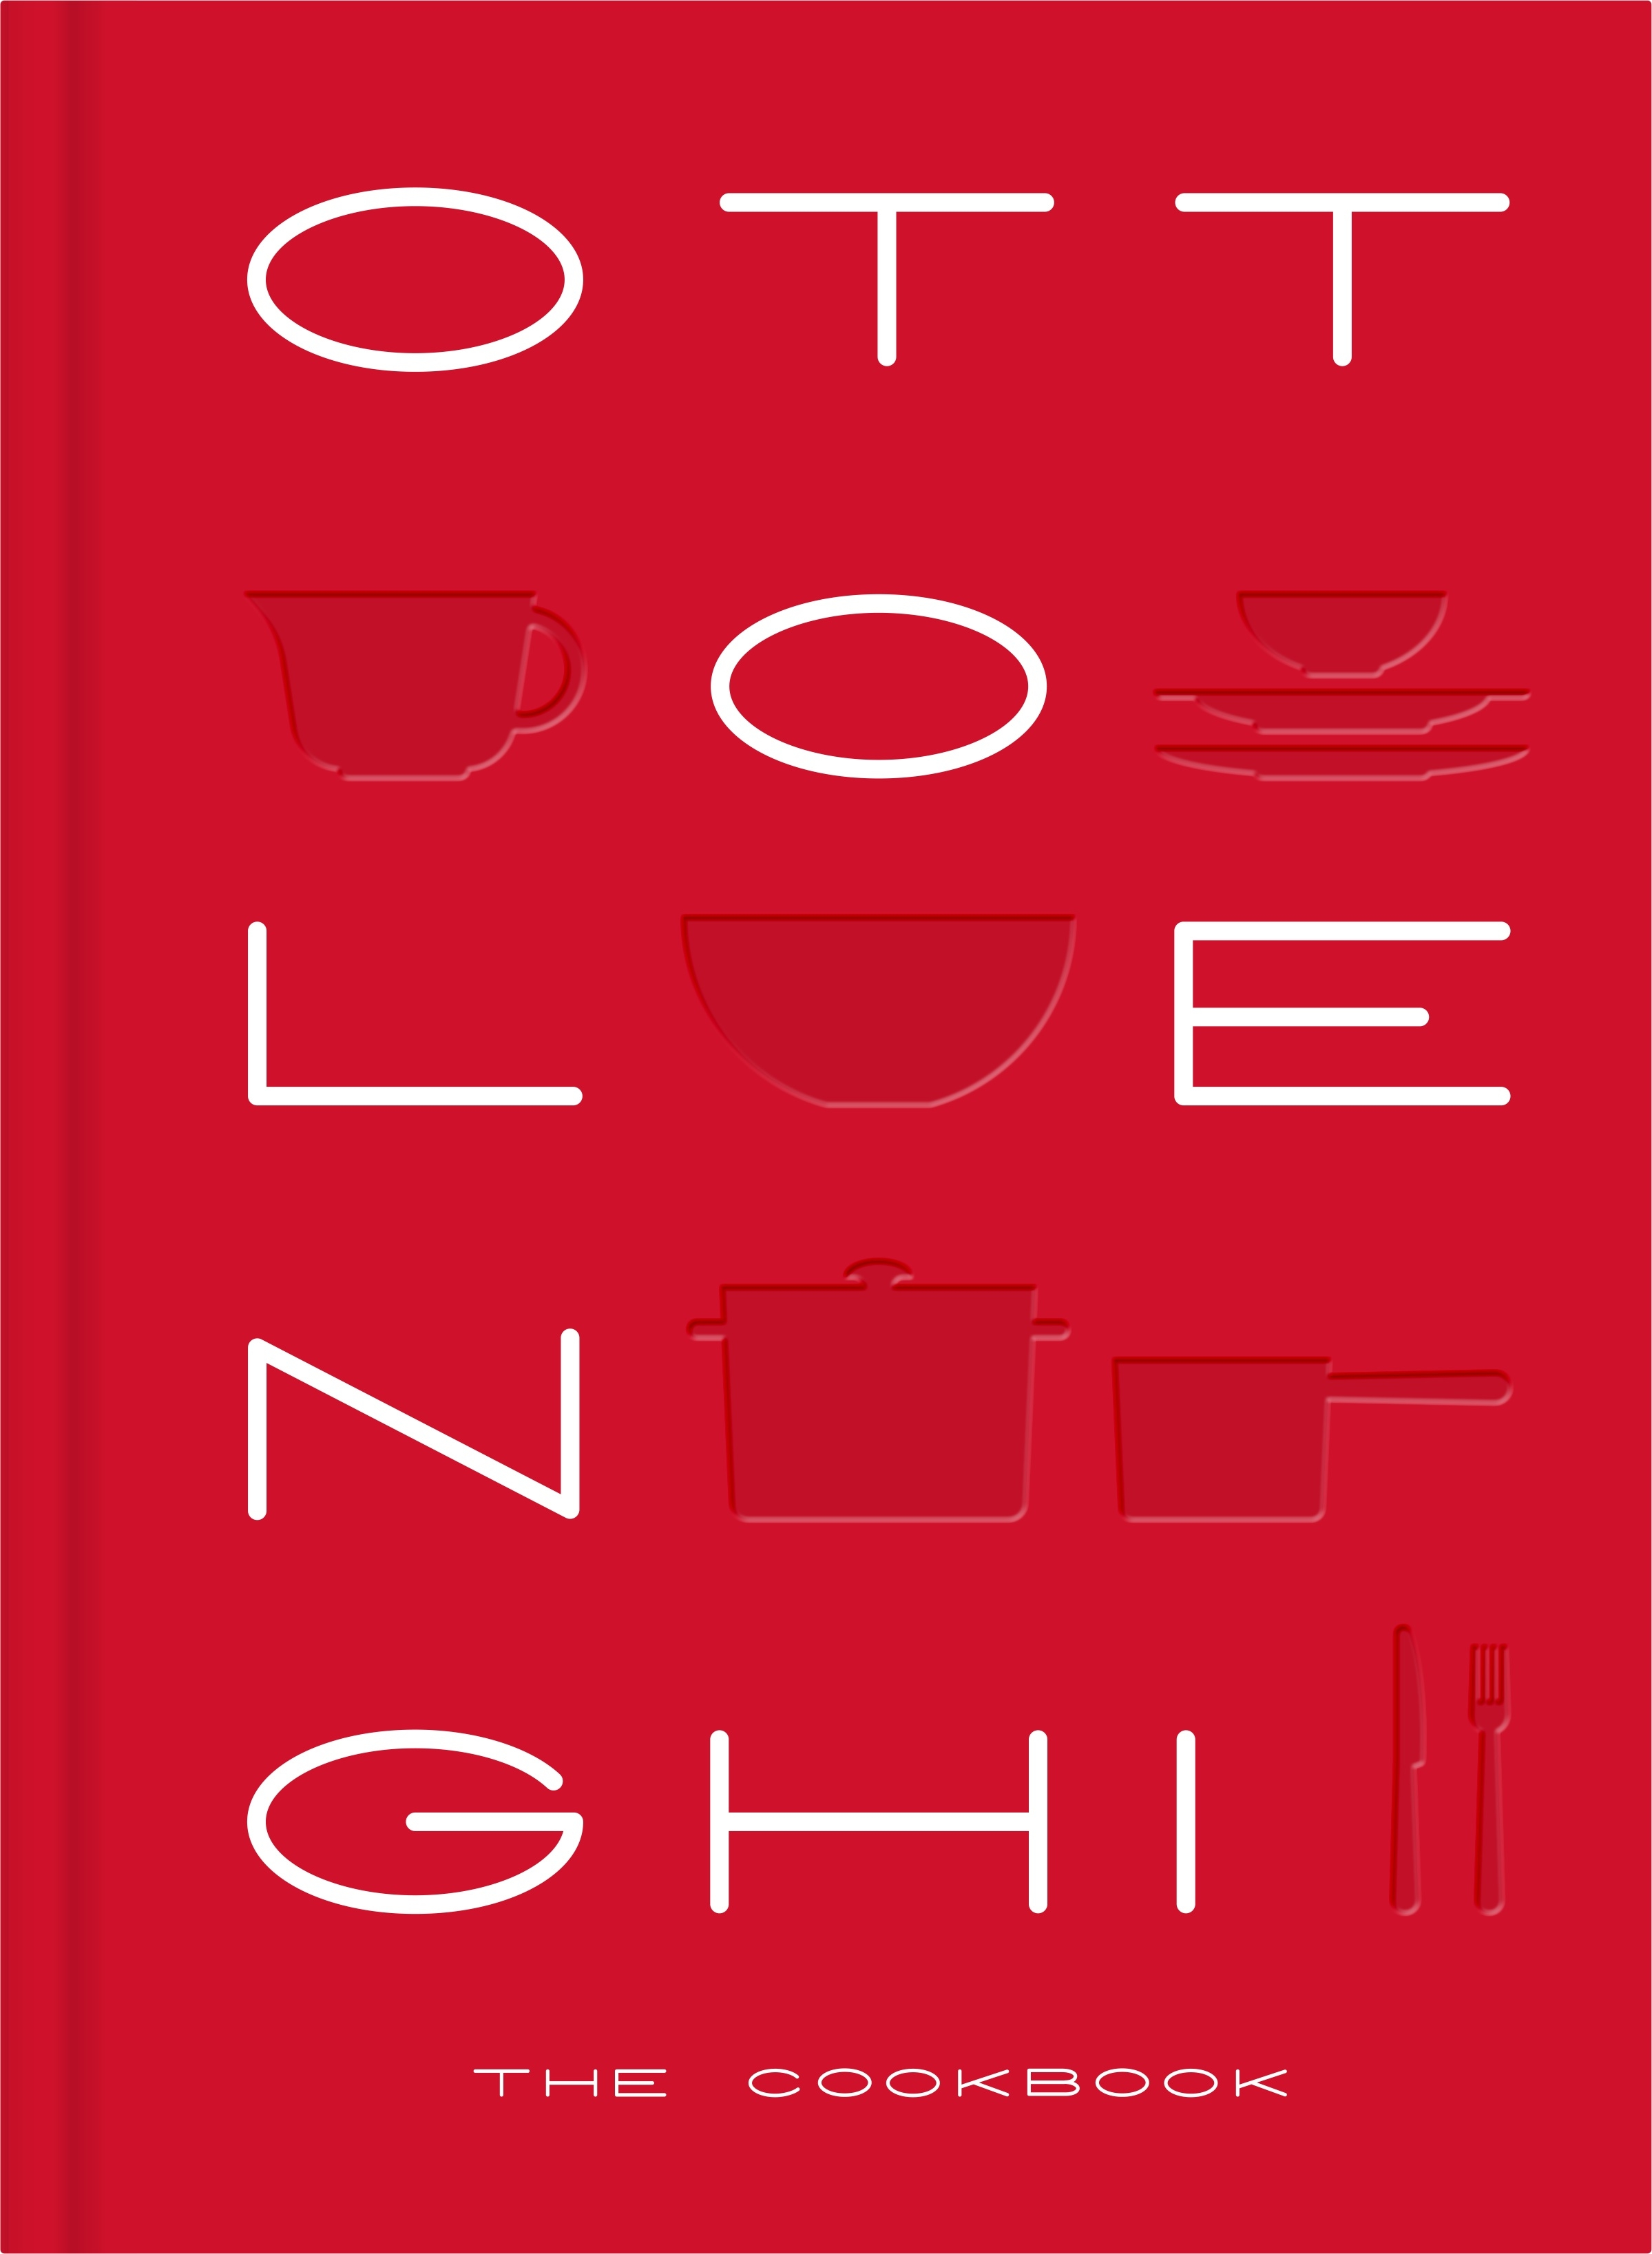 Ottolenghi: The Cookbook by Yotam Ottolenghi, ISBN: 9781785034770